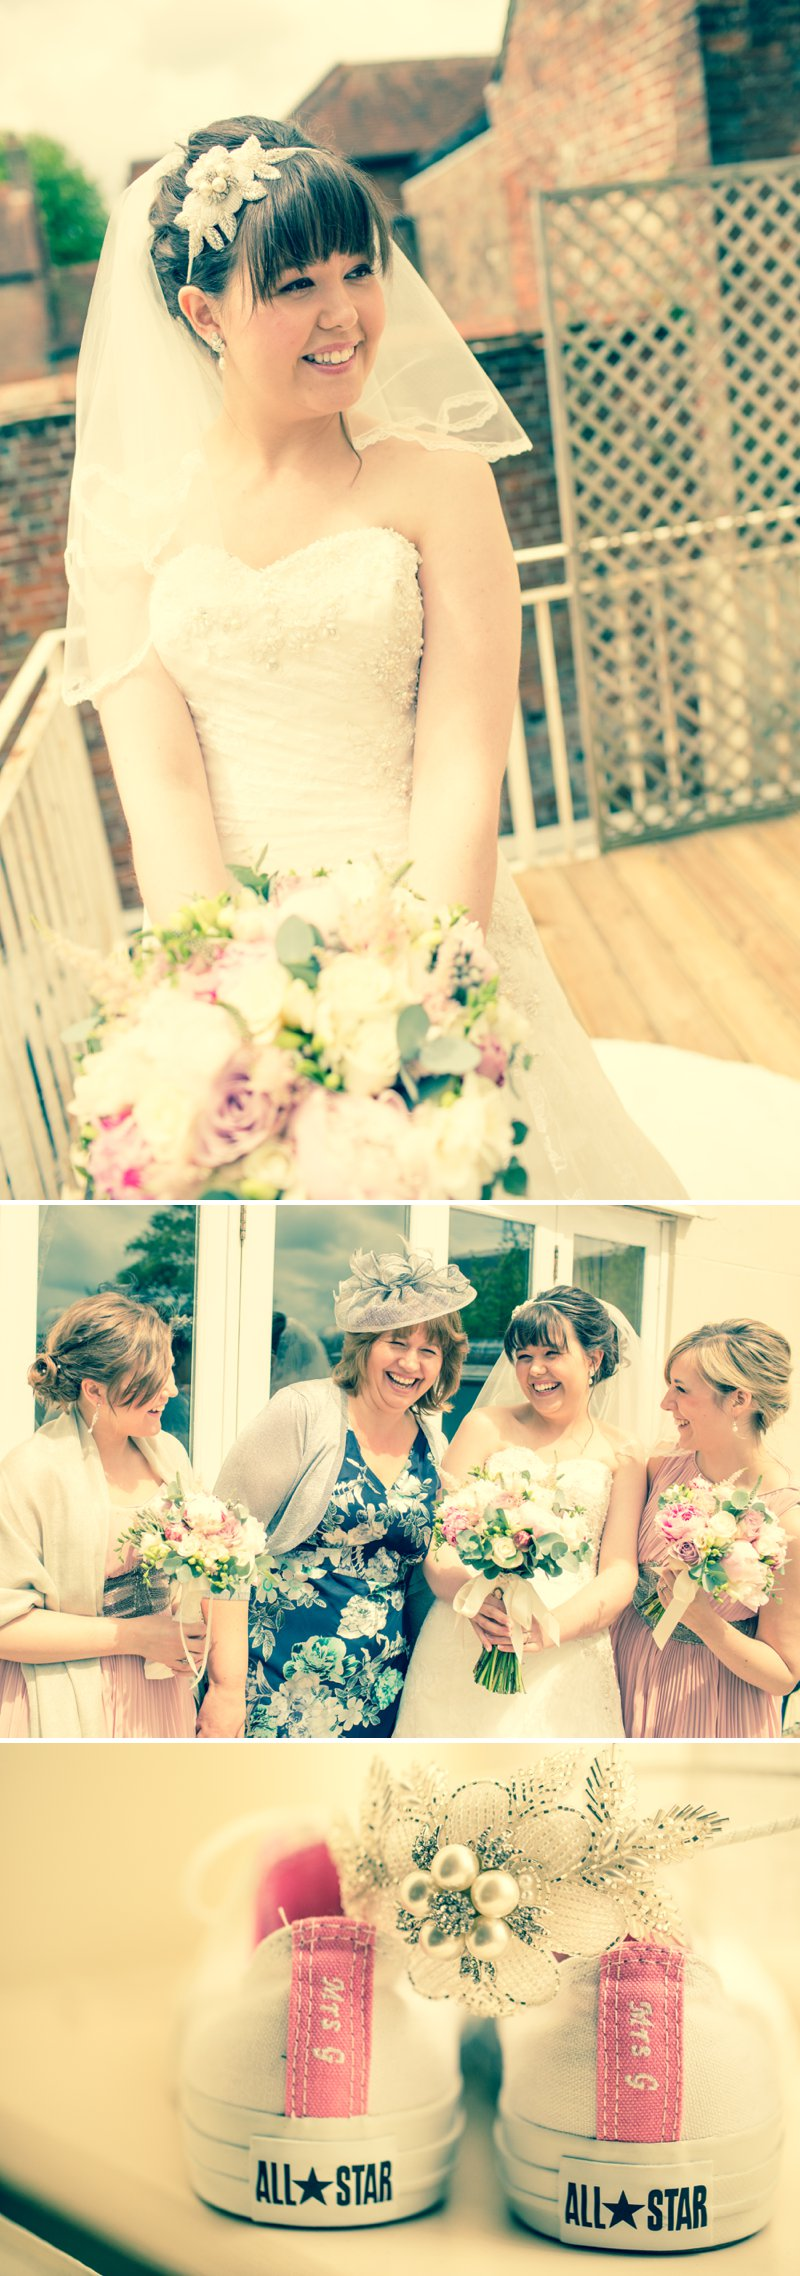 Elegant Wedding At Stanwell House Hotel In Hampshire With Bride In Phil Collins Bridal Gown And Groom In Moss Suit With A Blush Pink Colour Scheme And Comic Book Hero Details Images From Beki Young Wedding Photography 1